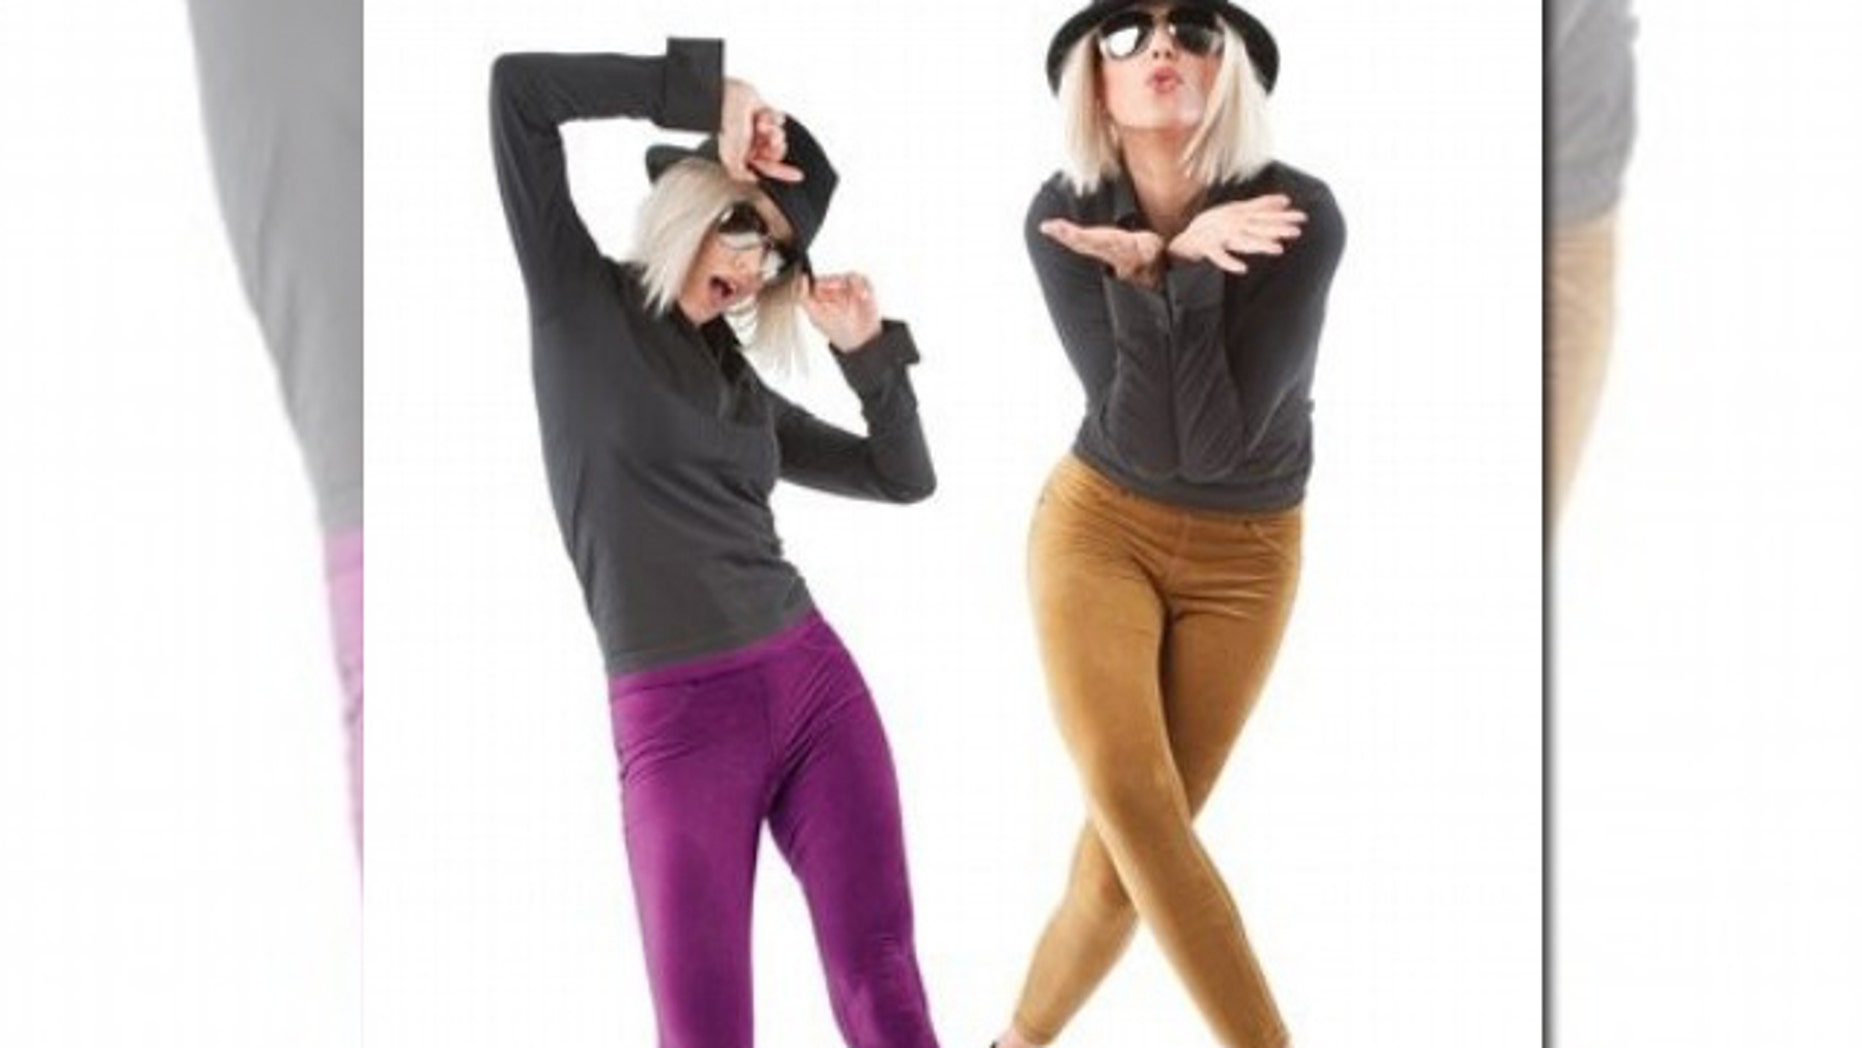 HUE Corduroy Leggings, $34, available at department/specialty stores nationwide and hue.com.